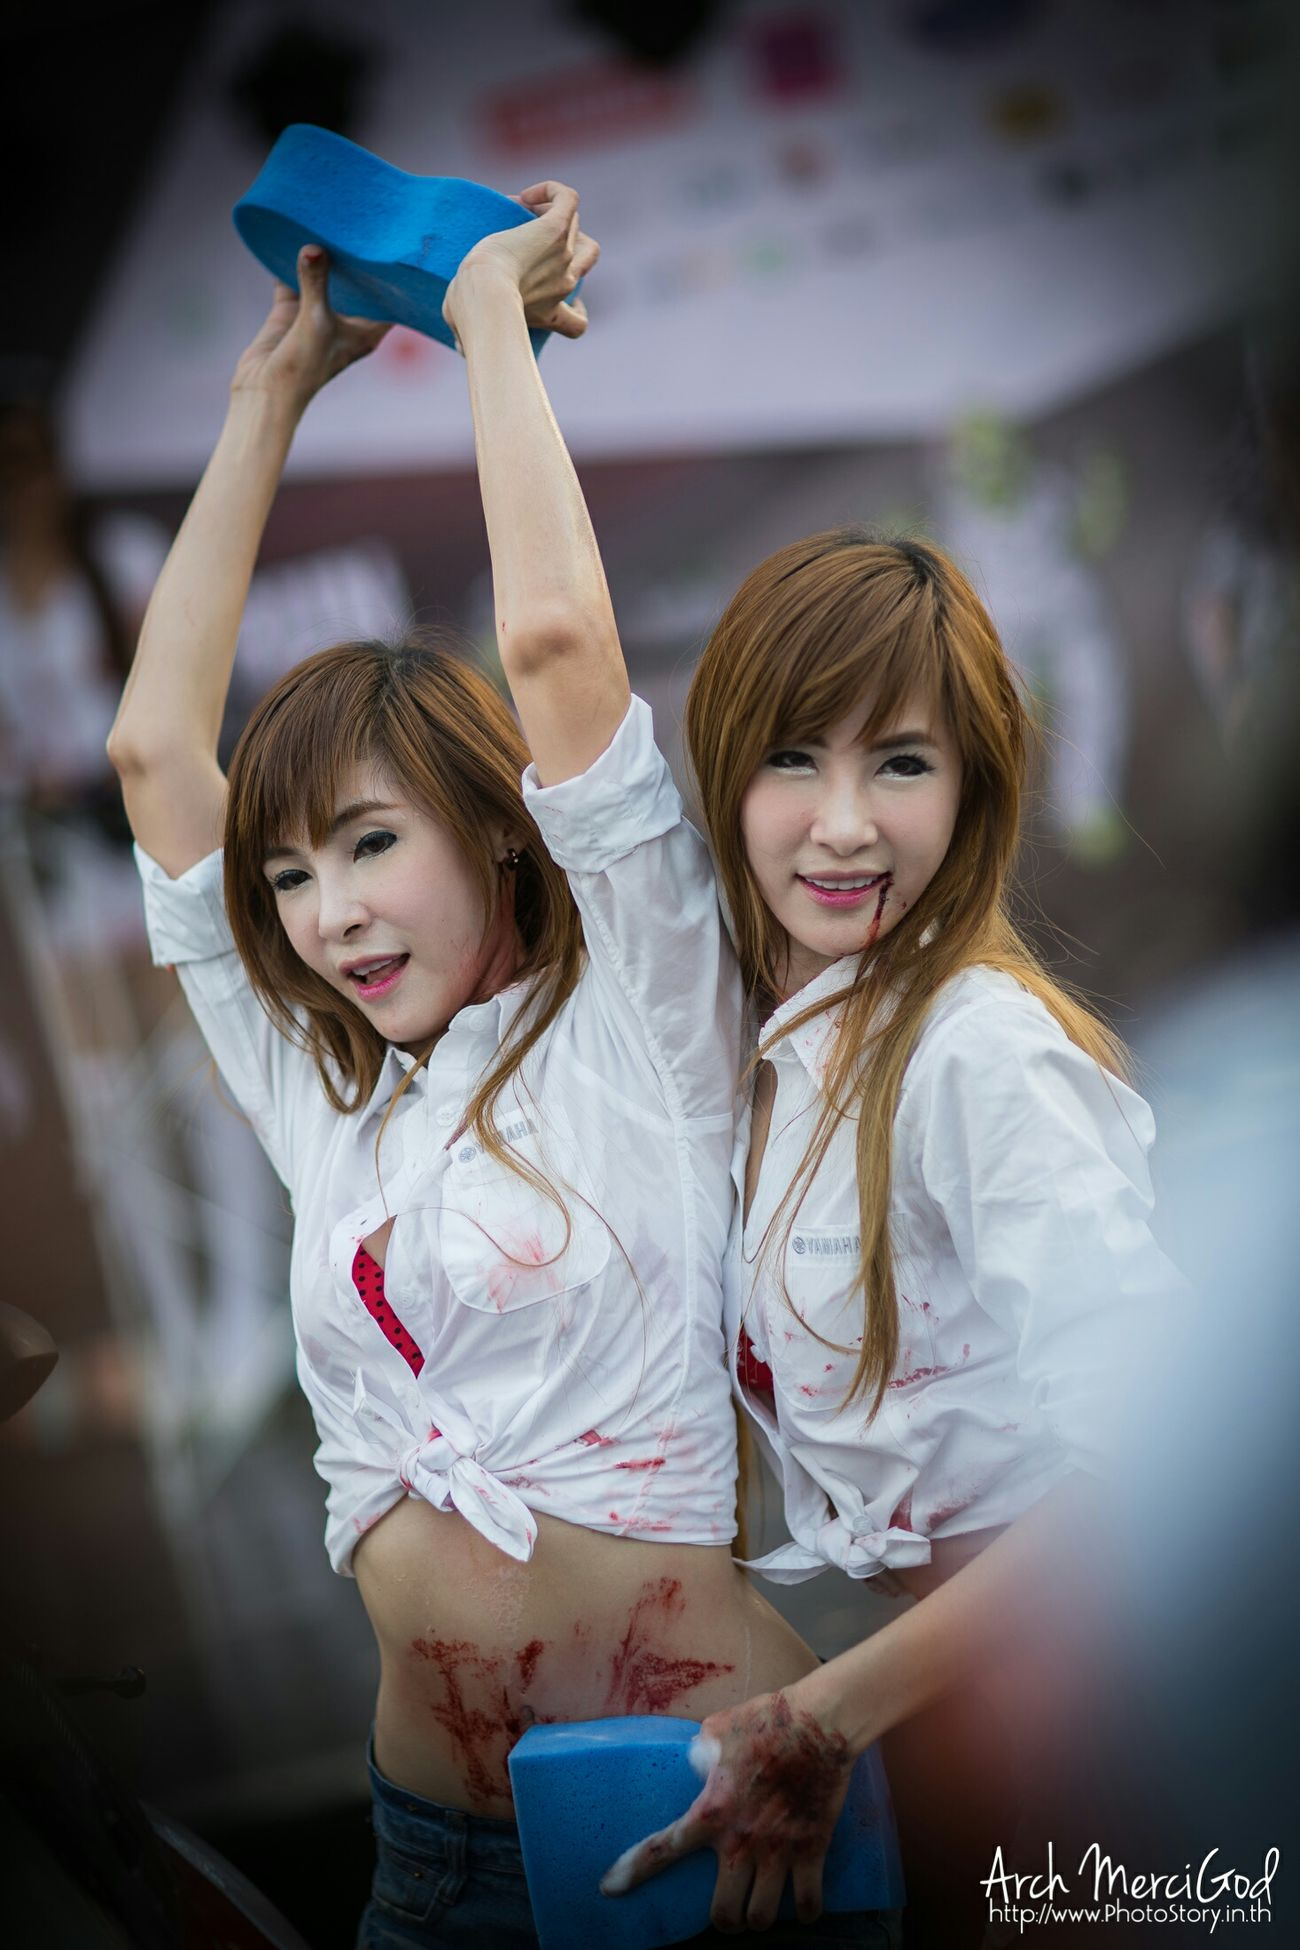 Run For Your Lifes Thailand http://www.photostory.in.th http://fb.me/ArchMerciGod Cute Couple Sexygirl Rfylth RFYL Cutegirl Portrait RFYLasia Beautiful Girl Modelgirl Sexy Lady